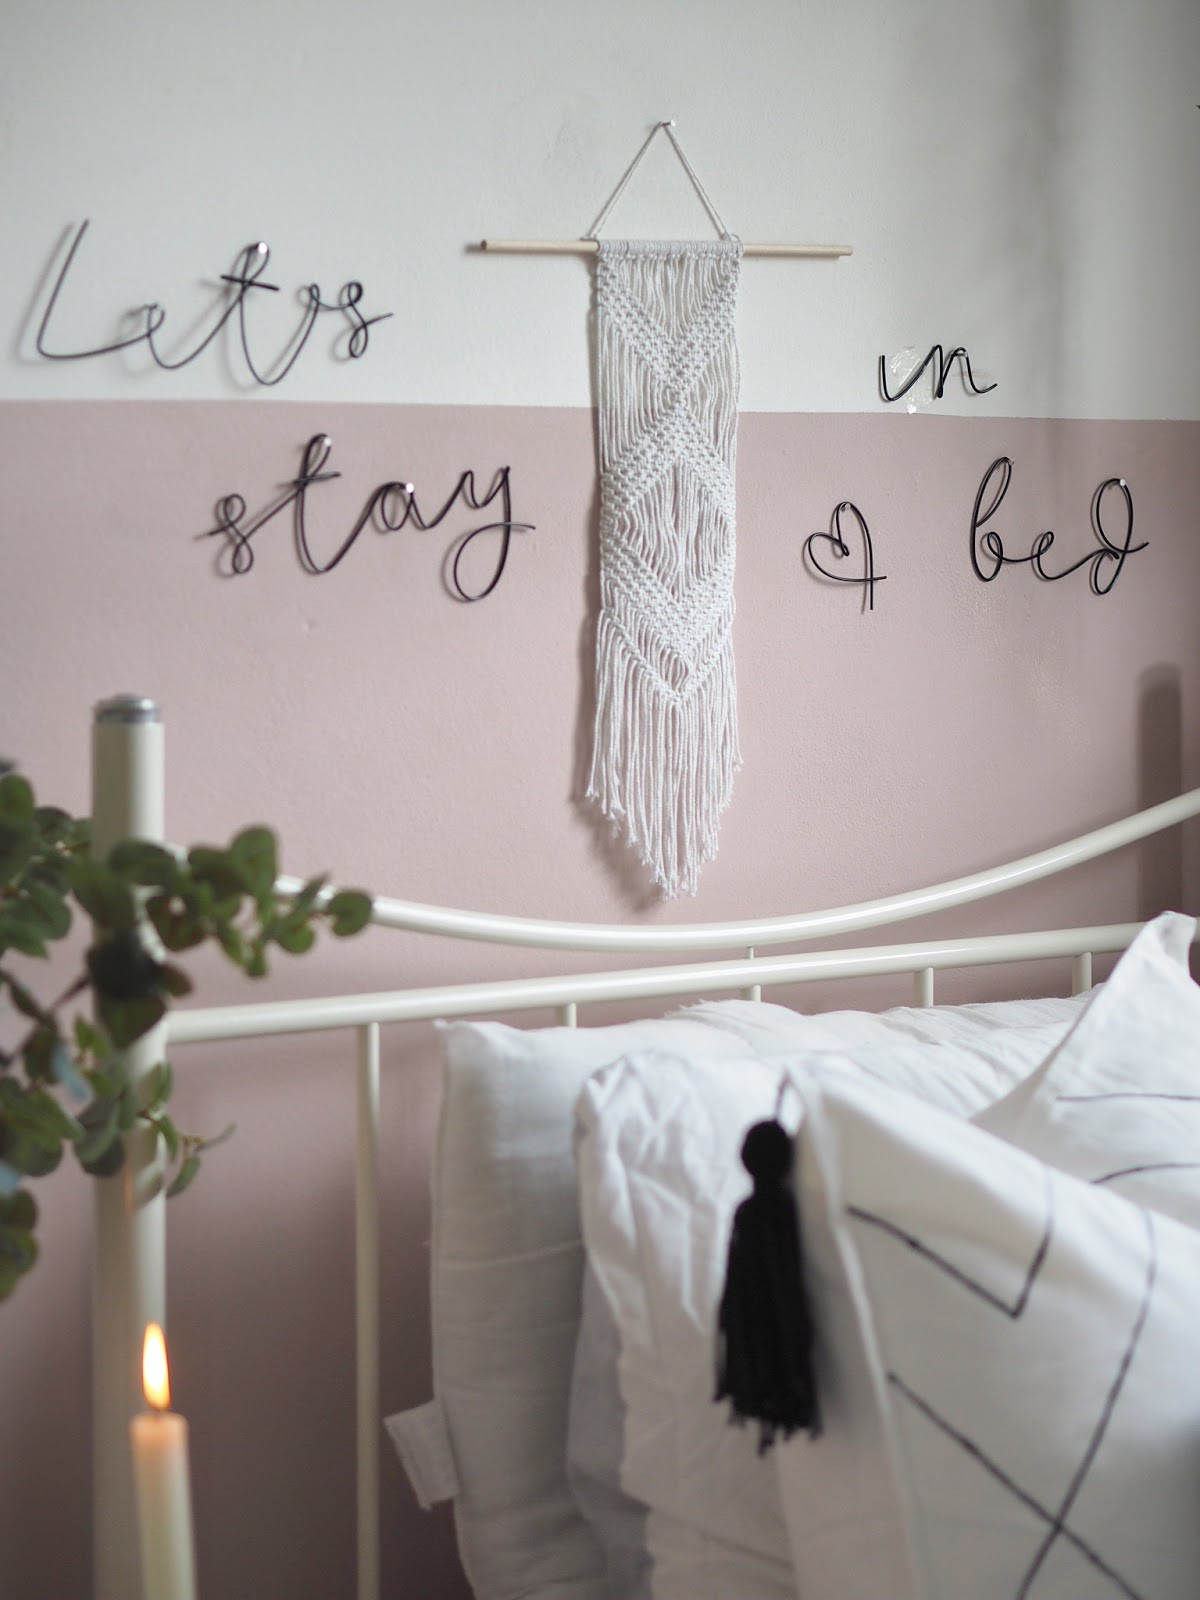 How to transform a room with half-painted walls. DIY room update. How to use frog tape to section off a wall and paint a feature. Boho bedroom transformation.